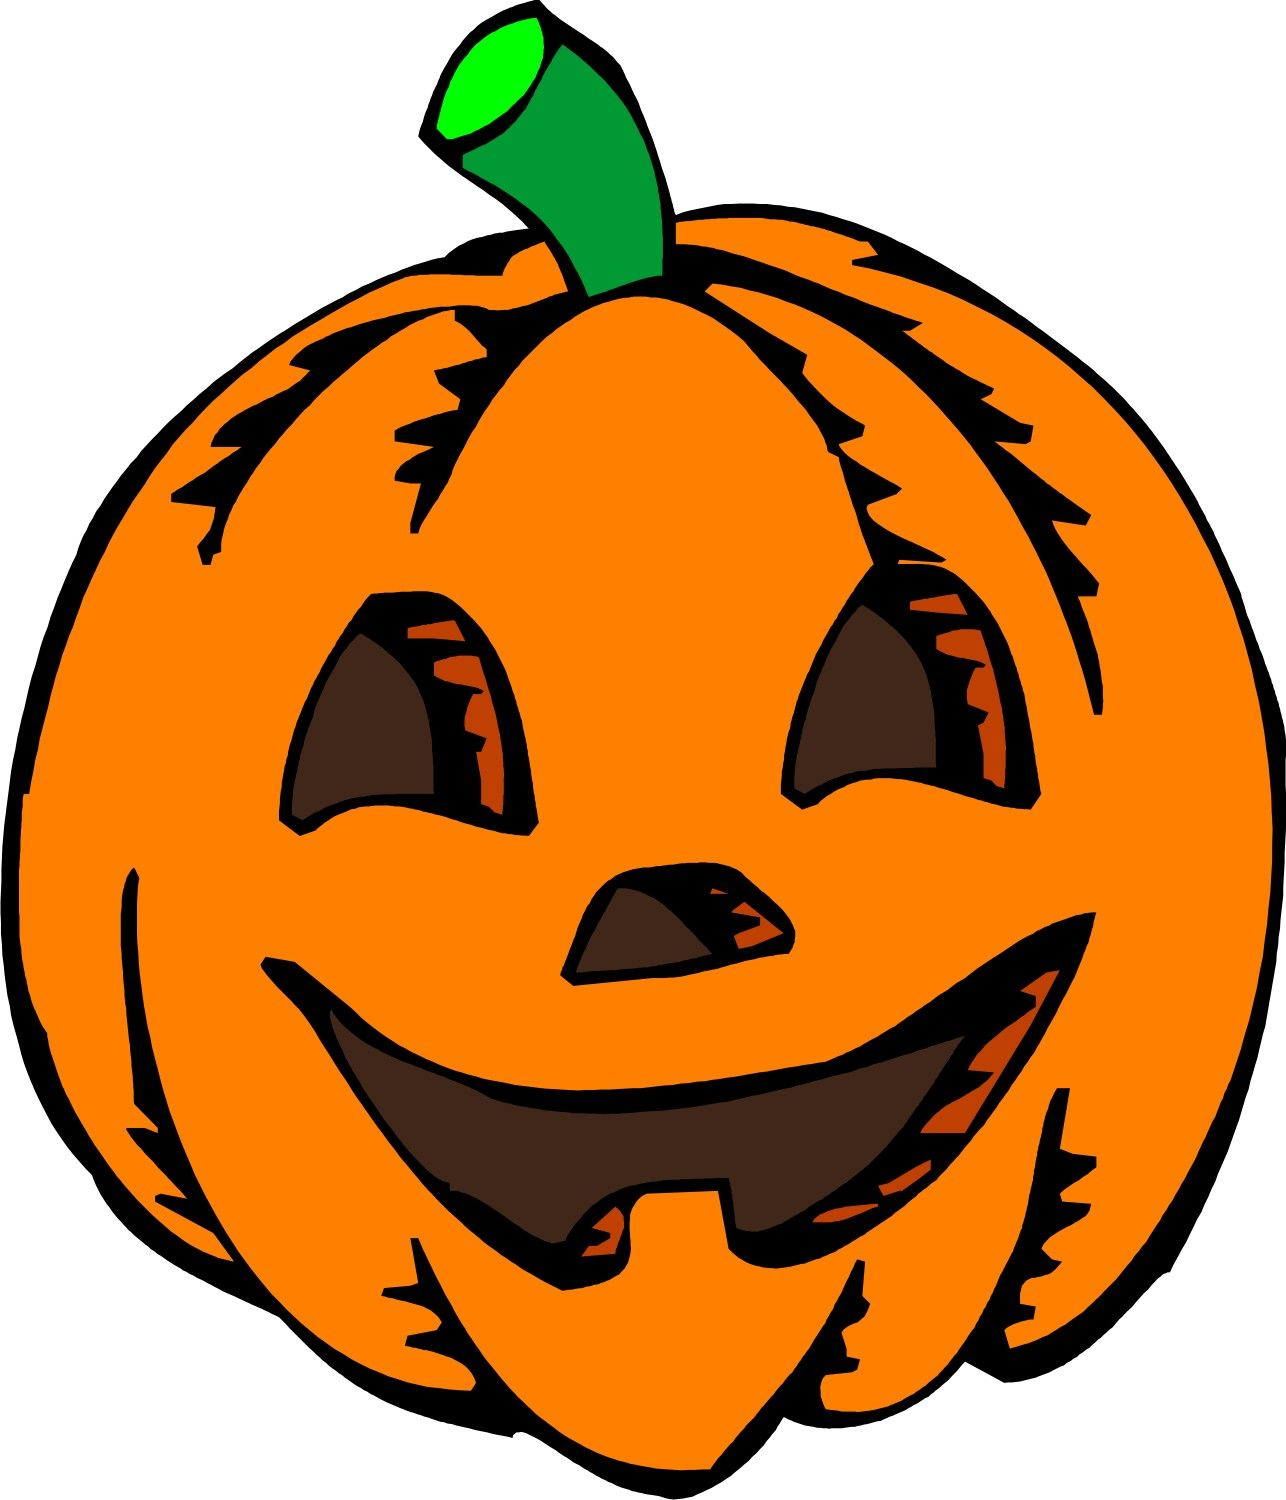 Halloween Pumpkin Clipart #7.